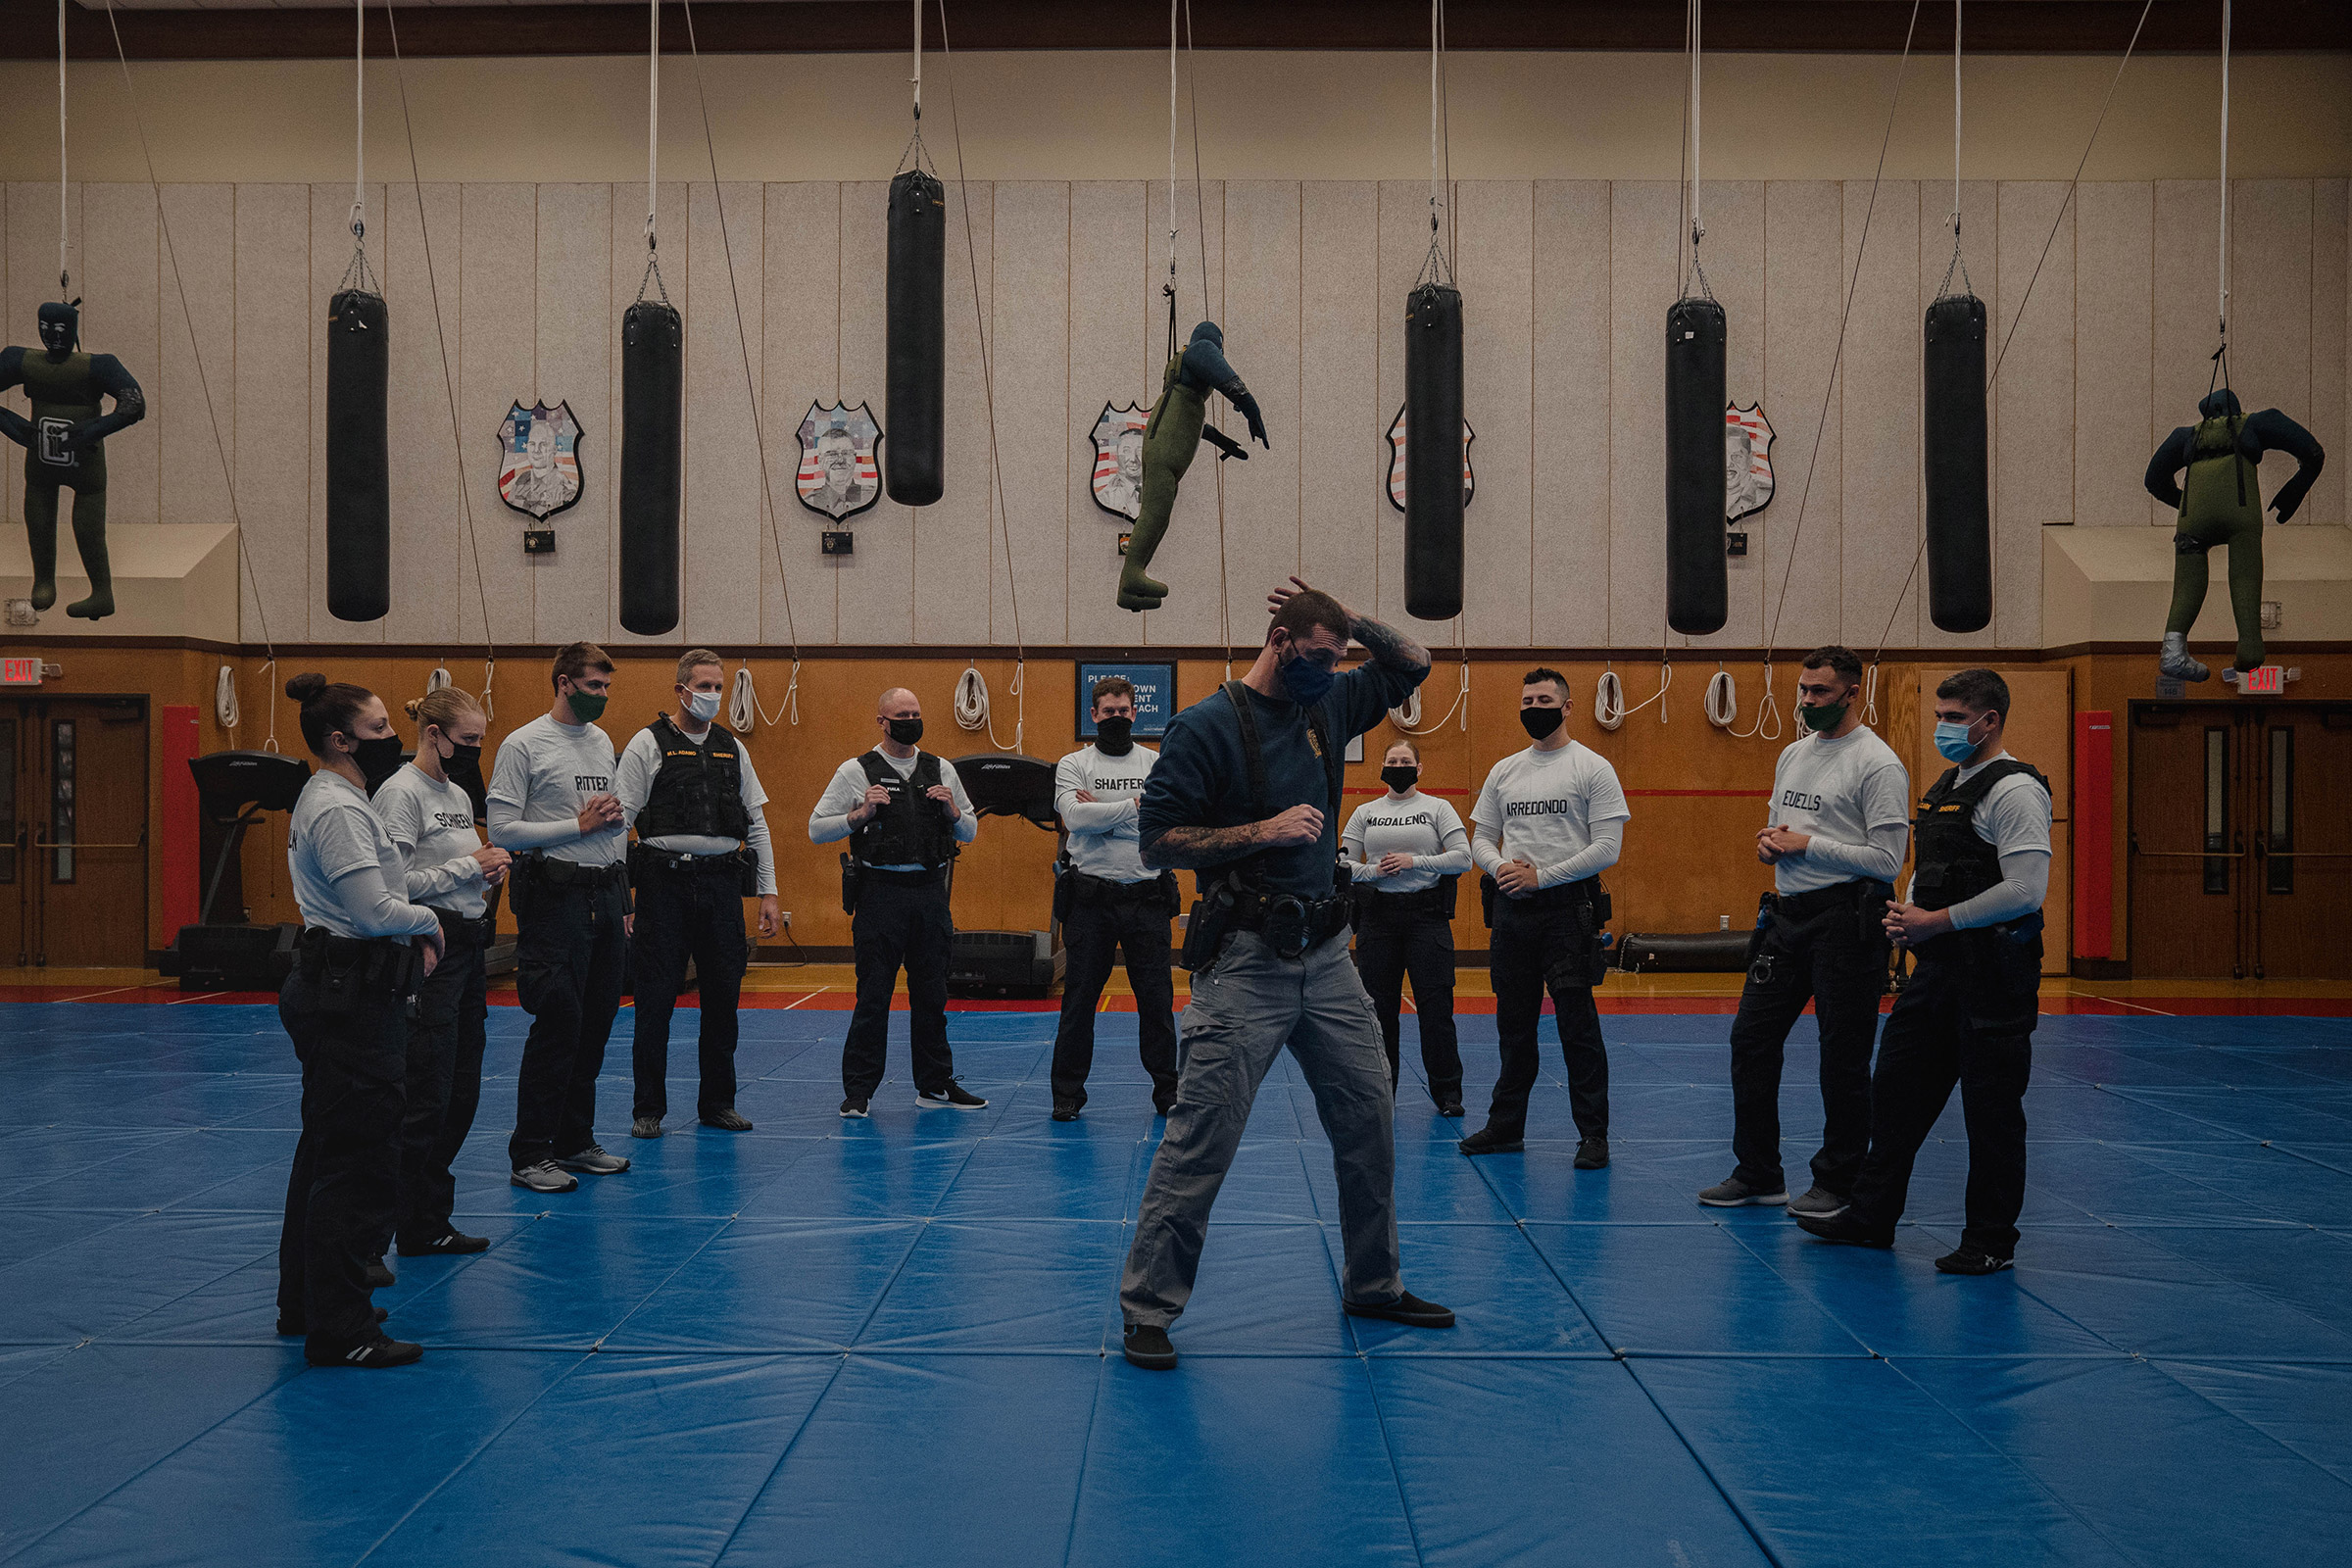 With punching bags and dummies overhead, instructor Javier Sola teaches frisking and handcuffing techniques to recruits at the Washington State Criminal Justice Training Commission facility in Burien, Wash., on Oct. 22. Washington State is one of the few places in the U.S. that requires all recruits to go through the state-run Basic Law Enforcement Academy, except for those becoming state patrol officers, a system that advocates of police reform support.